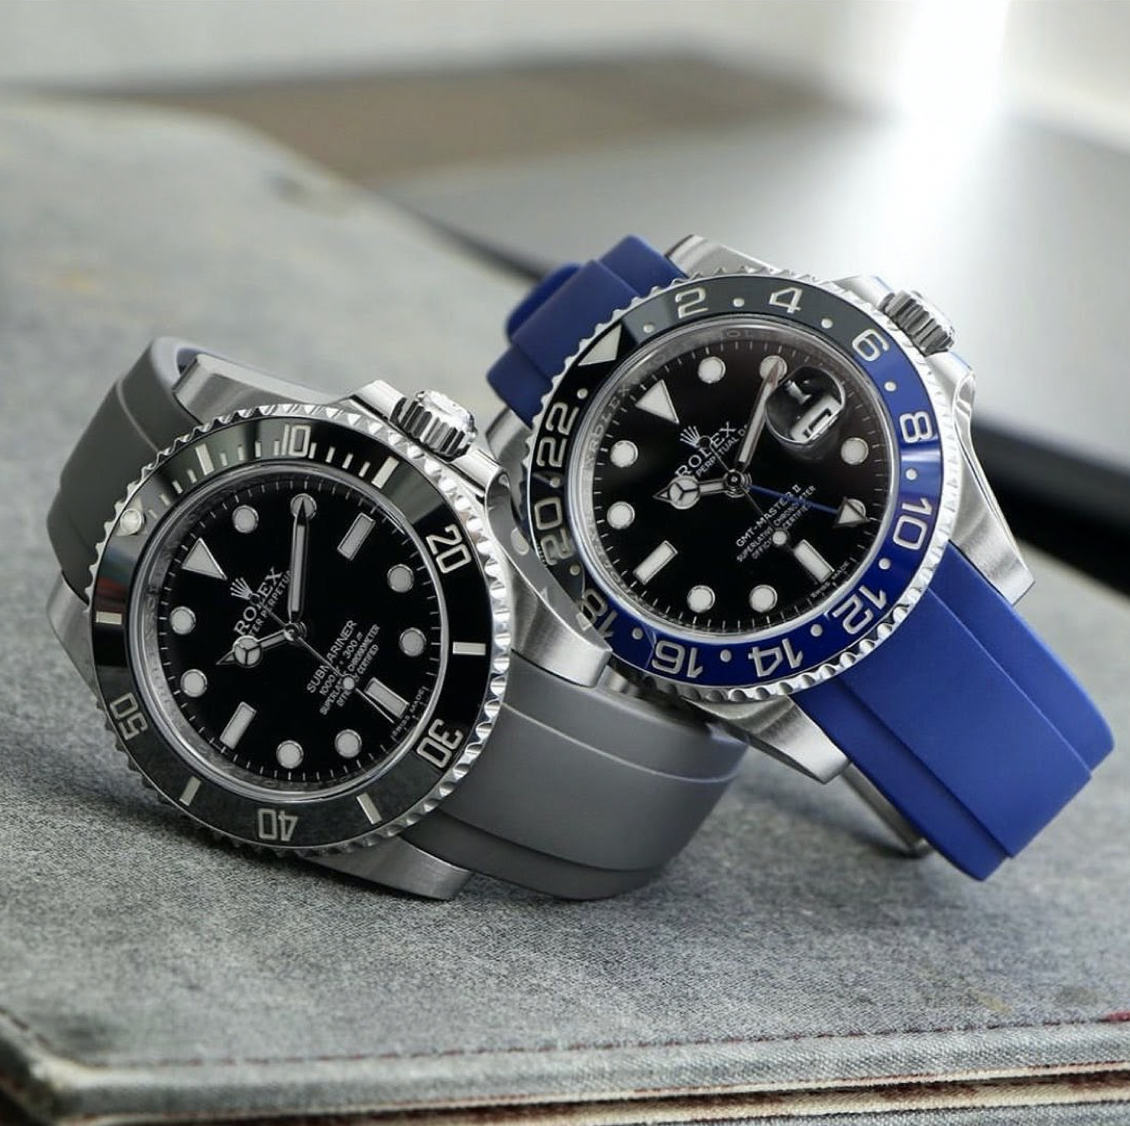 two rolex watches one with gray rubber and one with blue rubber everest bands